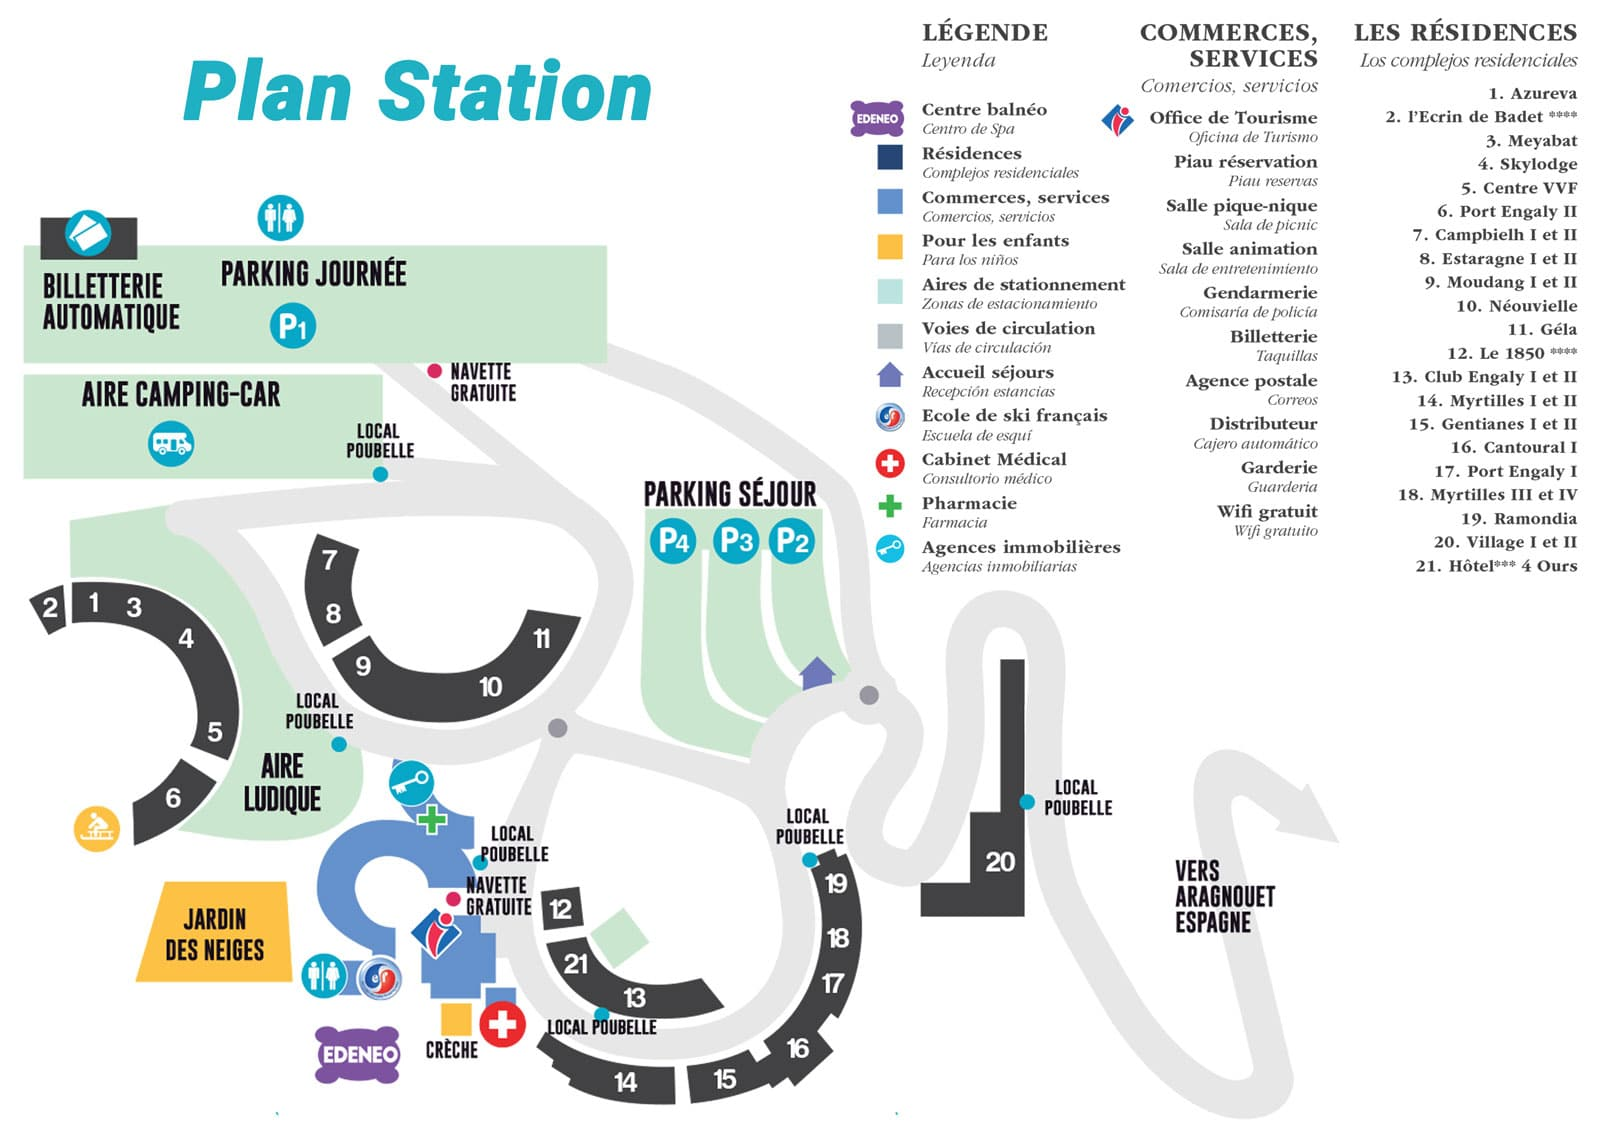 Plan Station Piau Engaly